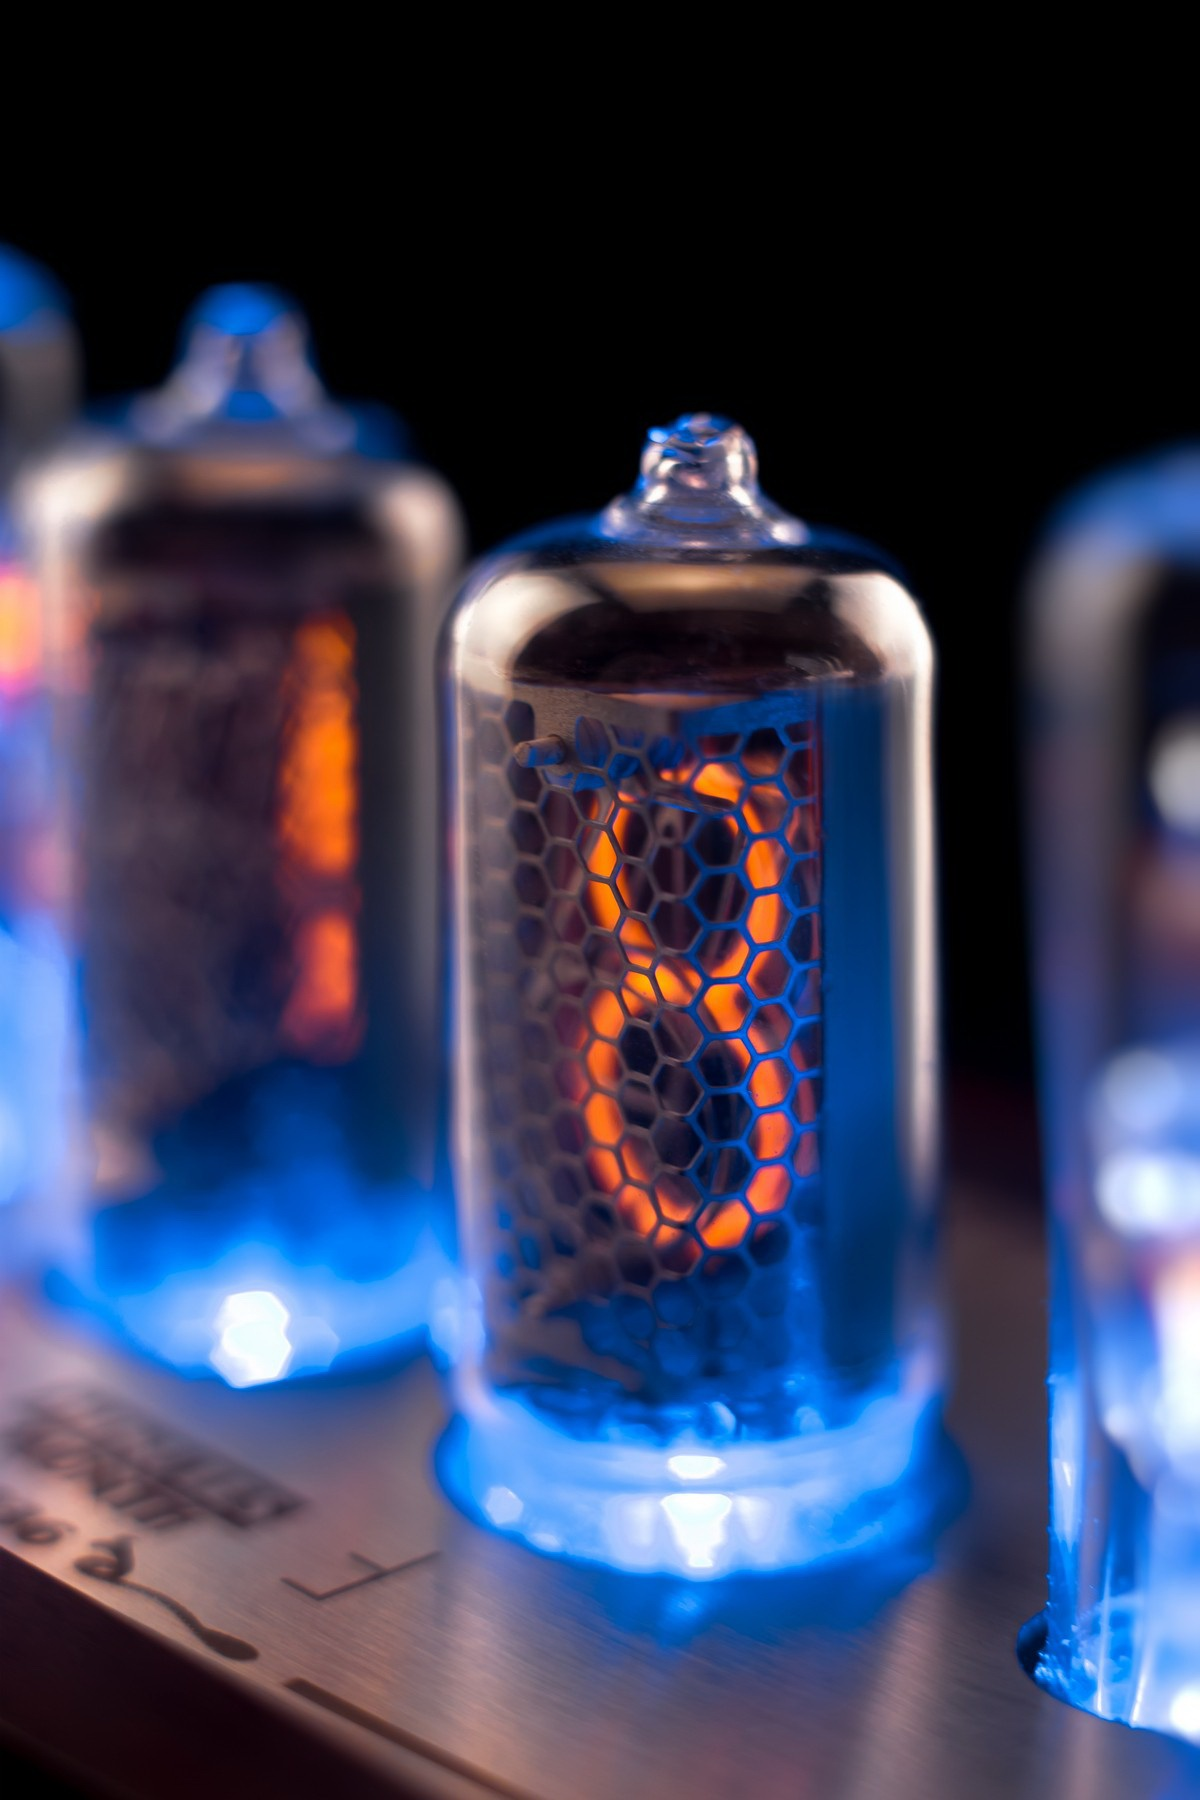 Divergence Meter with Sockets IN-8 NIXIE Tubes Clock GRA/&AFCH Music,USB,RGB